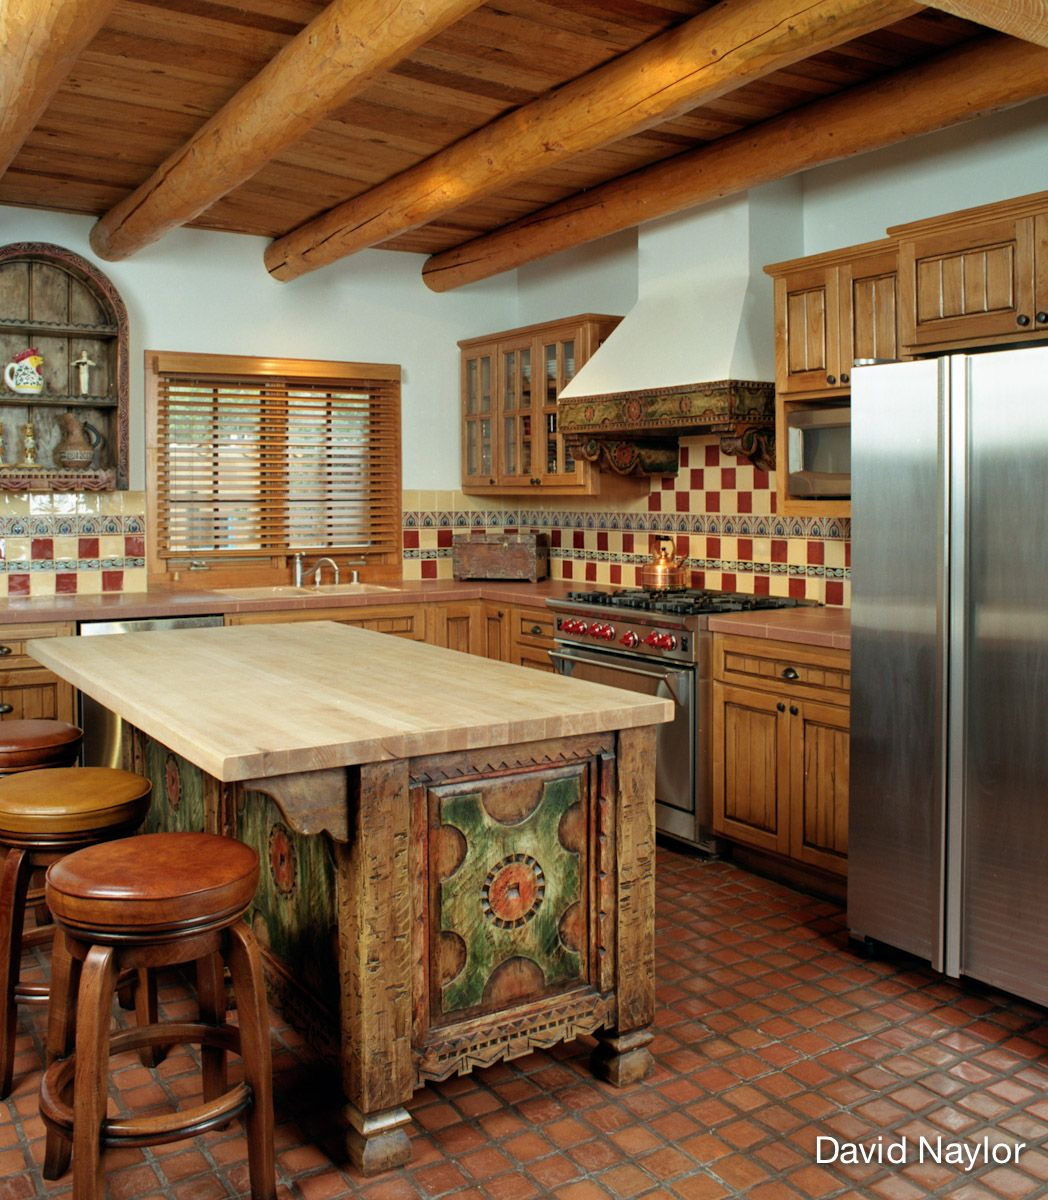 Best Kitchen Gallery: In This Kitchen The Island's Design Was Inspired By An Old New of Kitchen Cabinets Made In Mexico on rachelxblog.com